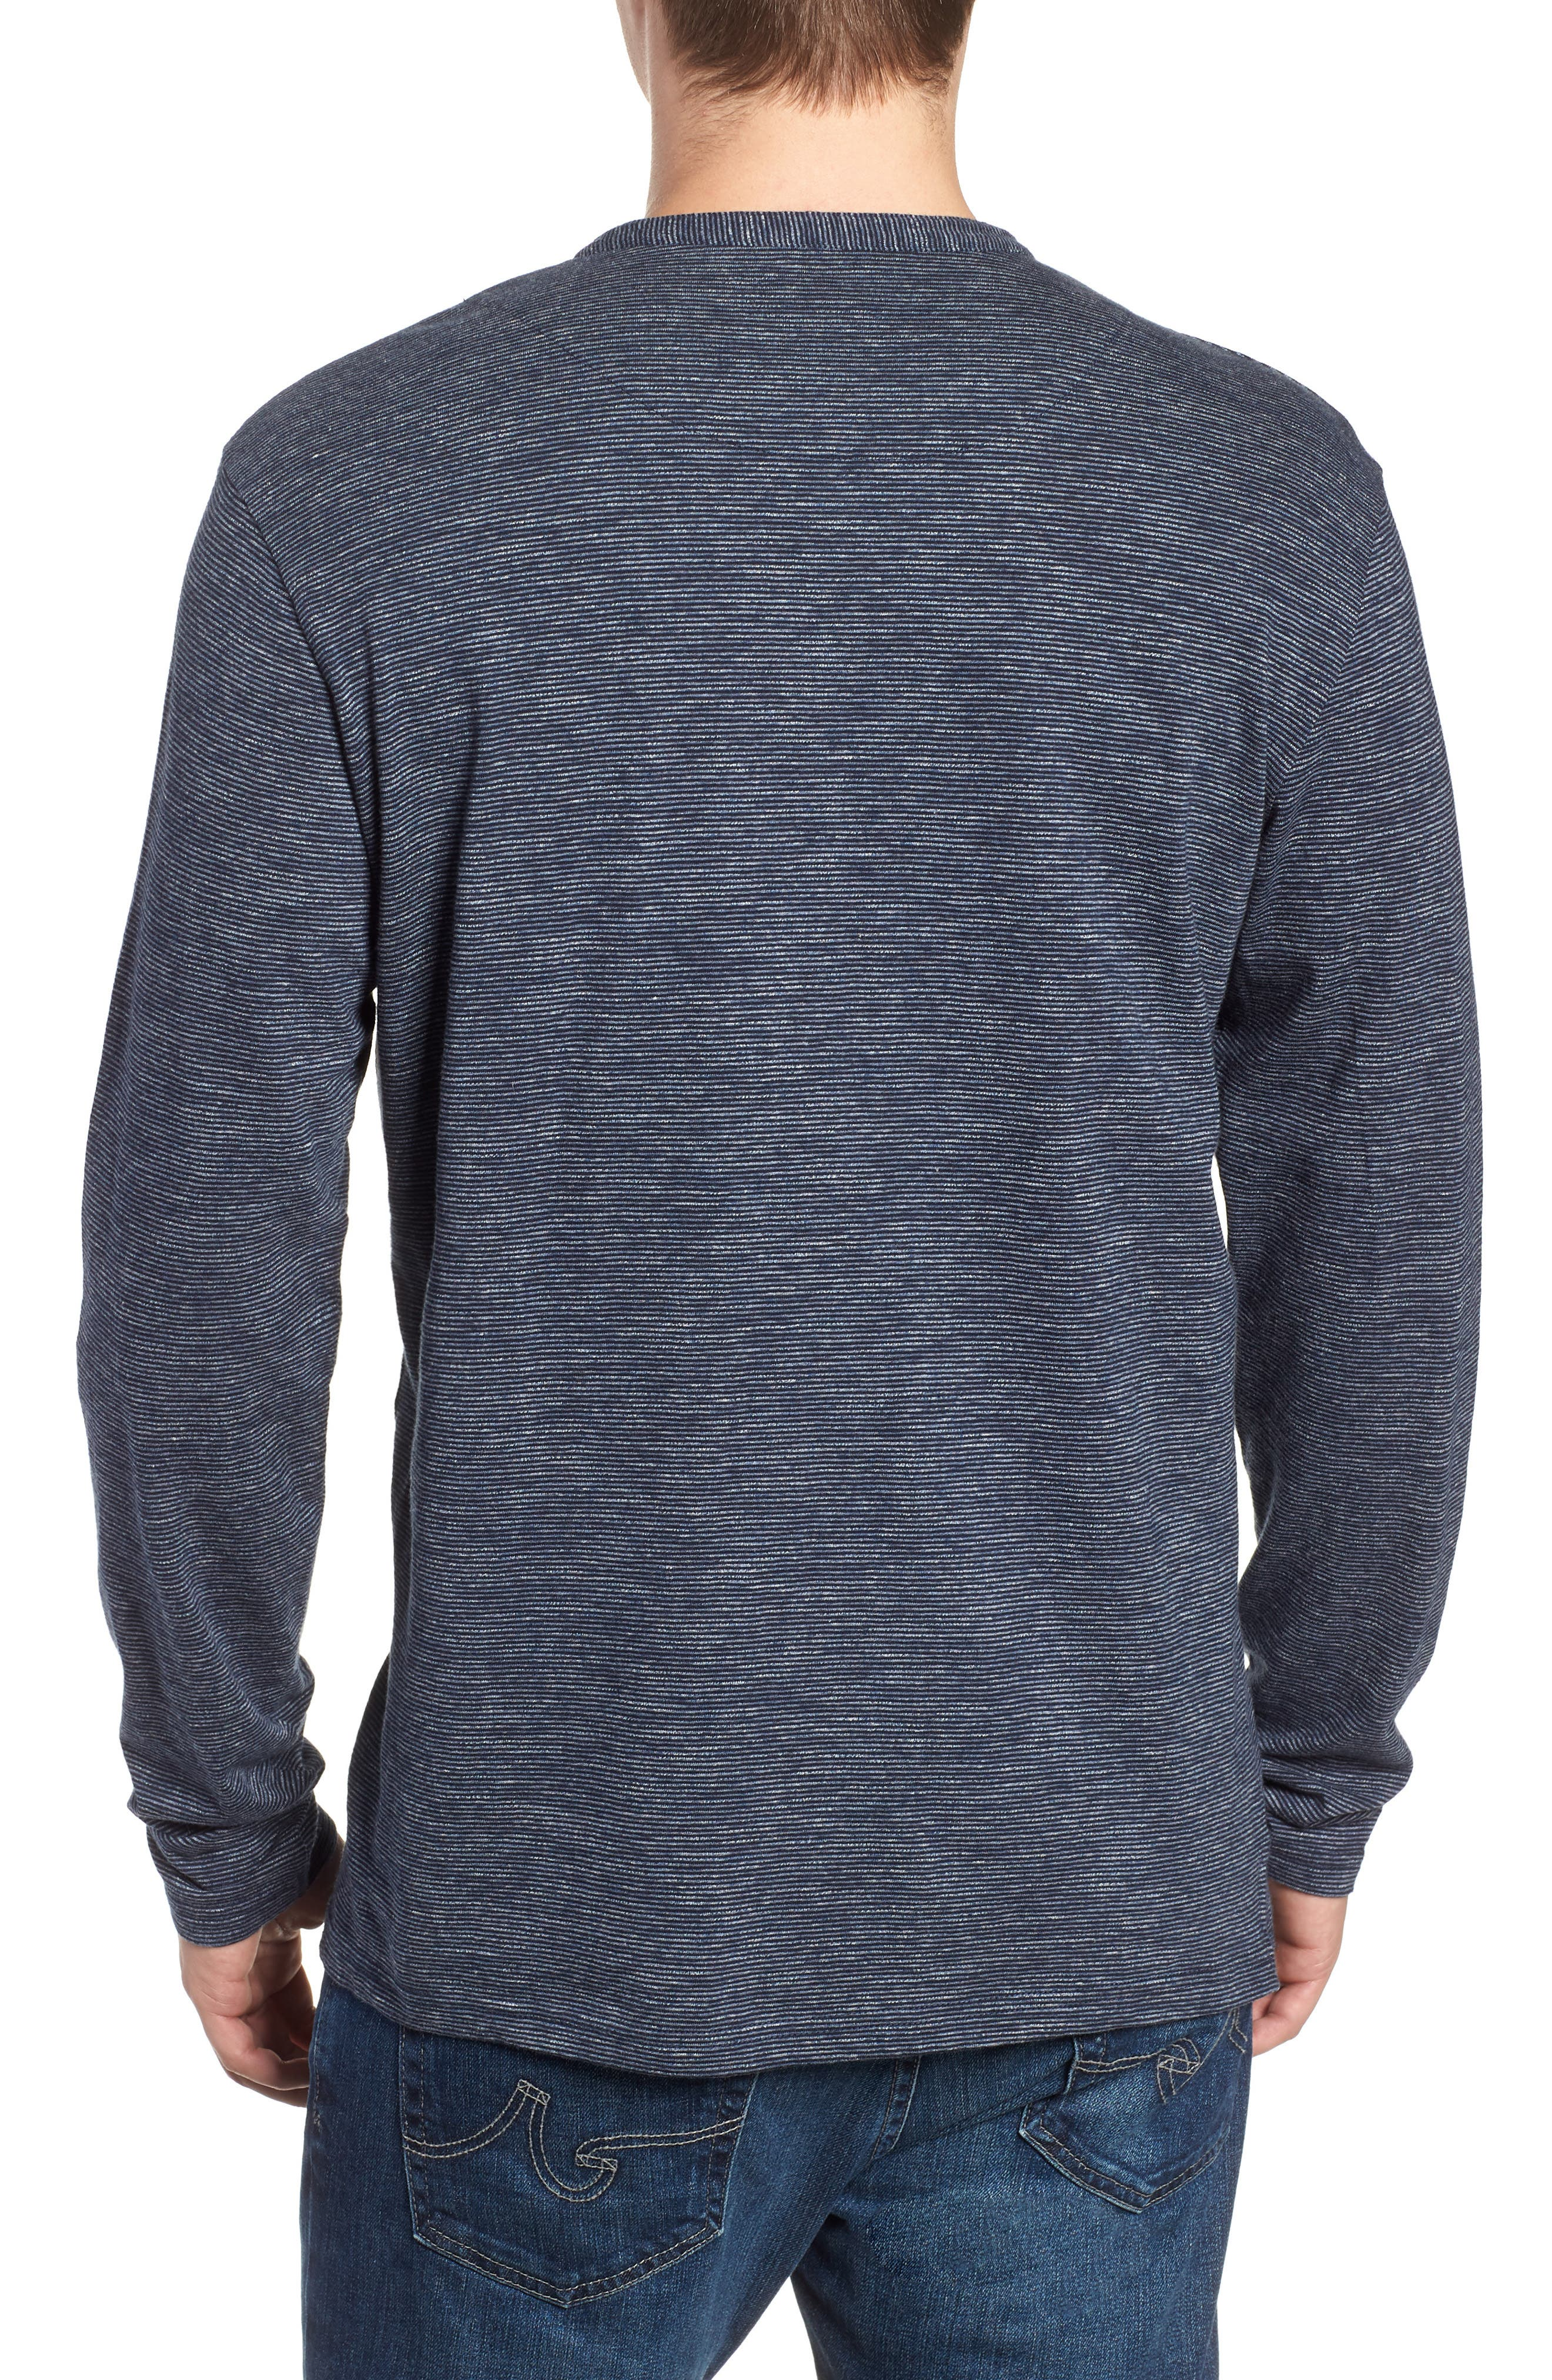 RODD & GUNN, Tasman Downs Regular Fit Henley, Alternate thumbnail 2, color, NAVY